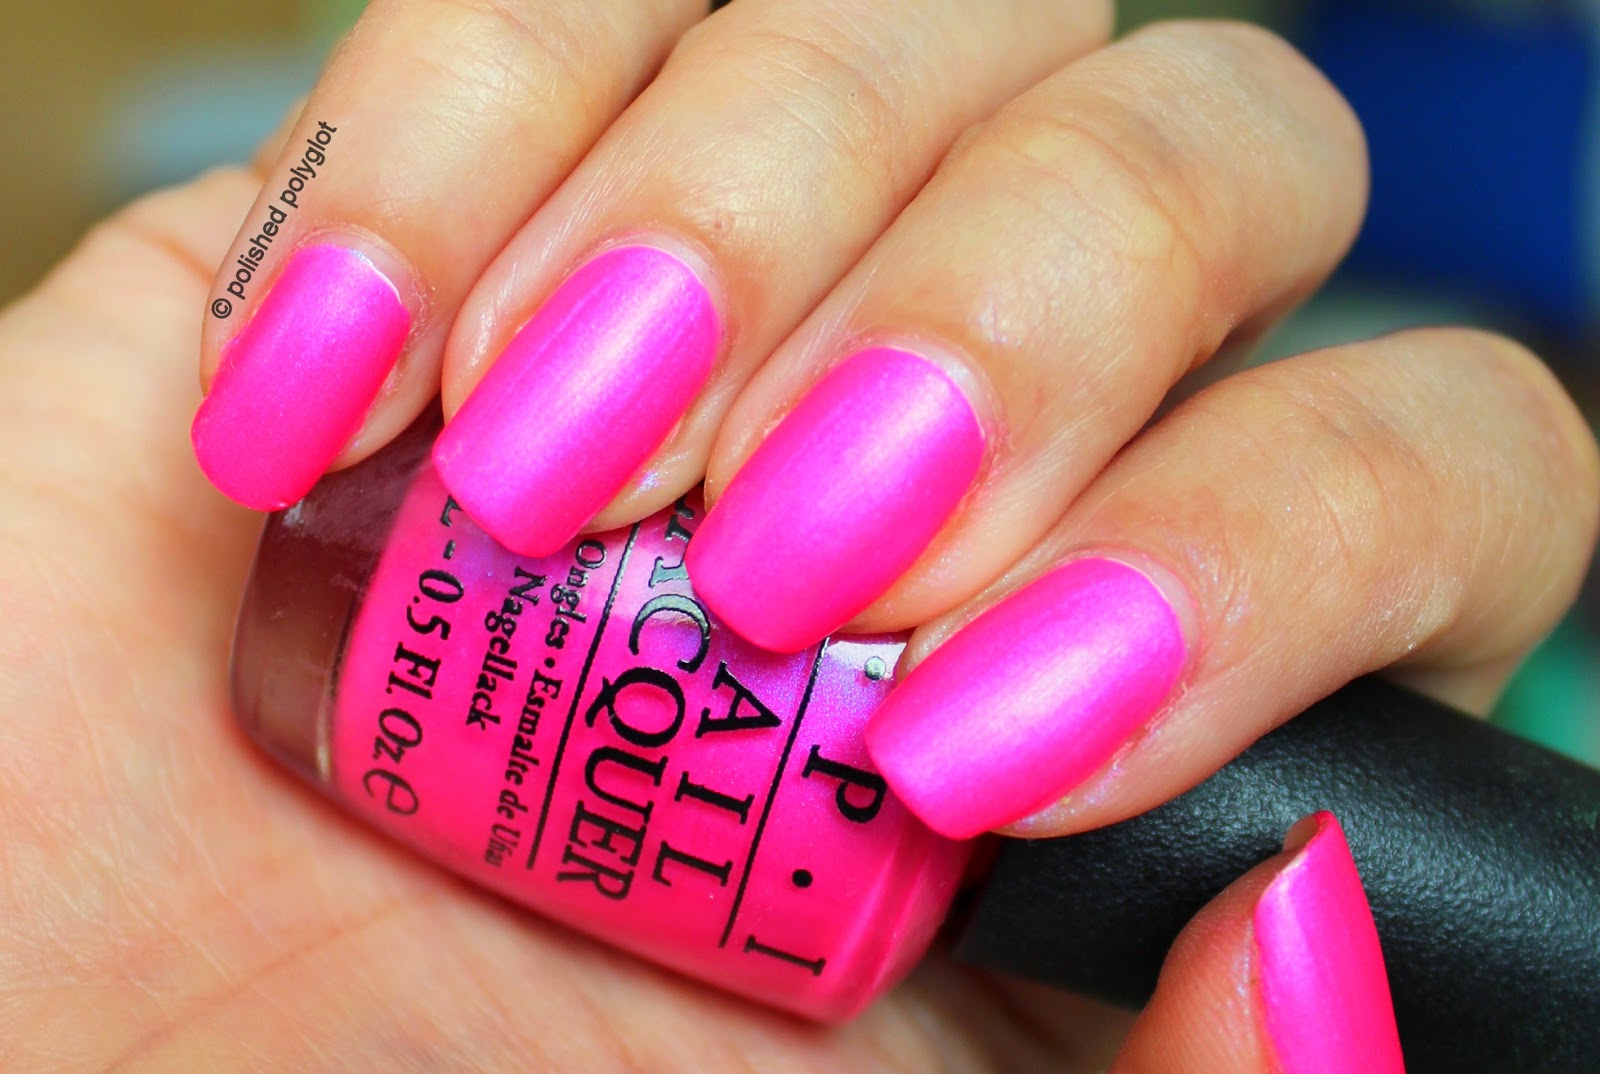 NOTD: OPI Hotter than you pink from Neon collection / Polished Polyglot